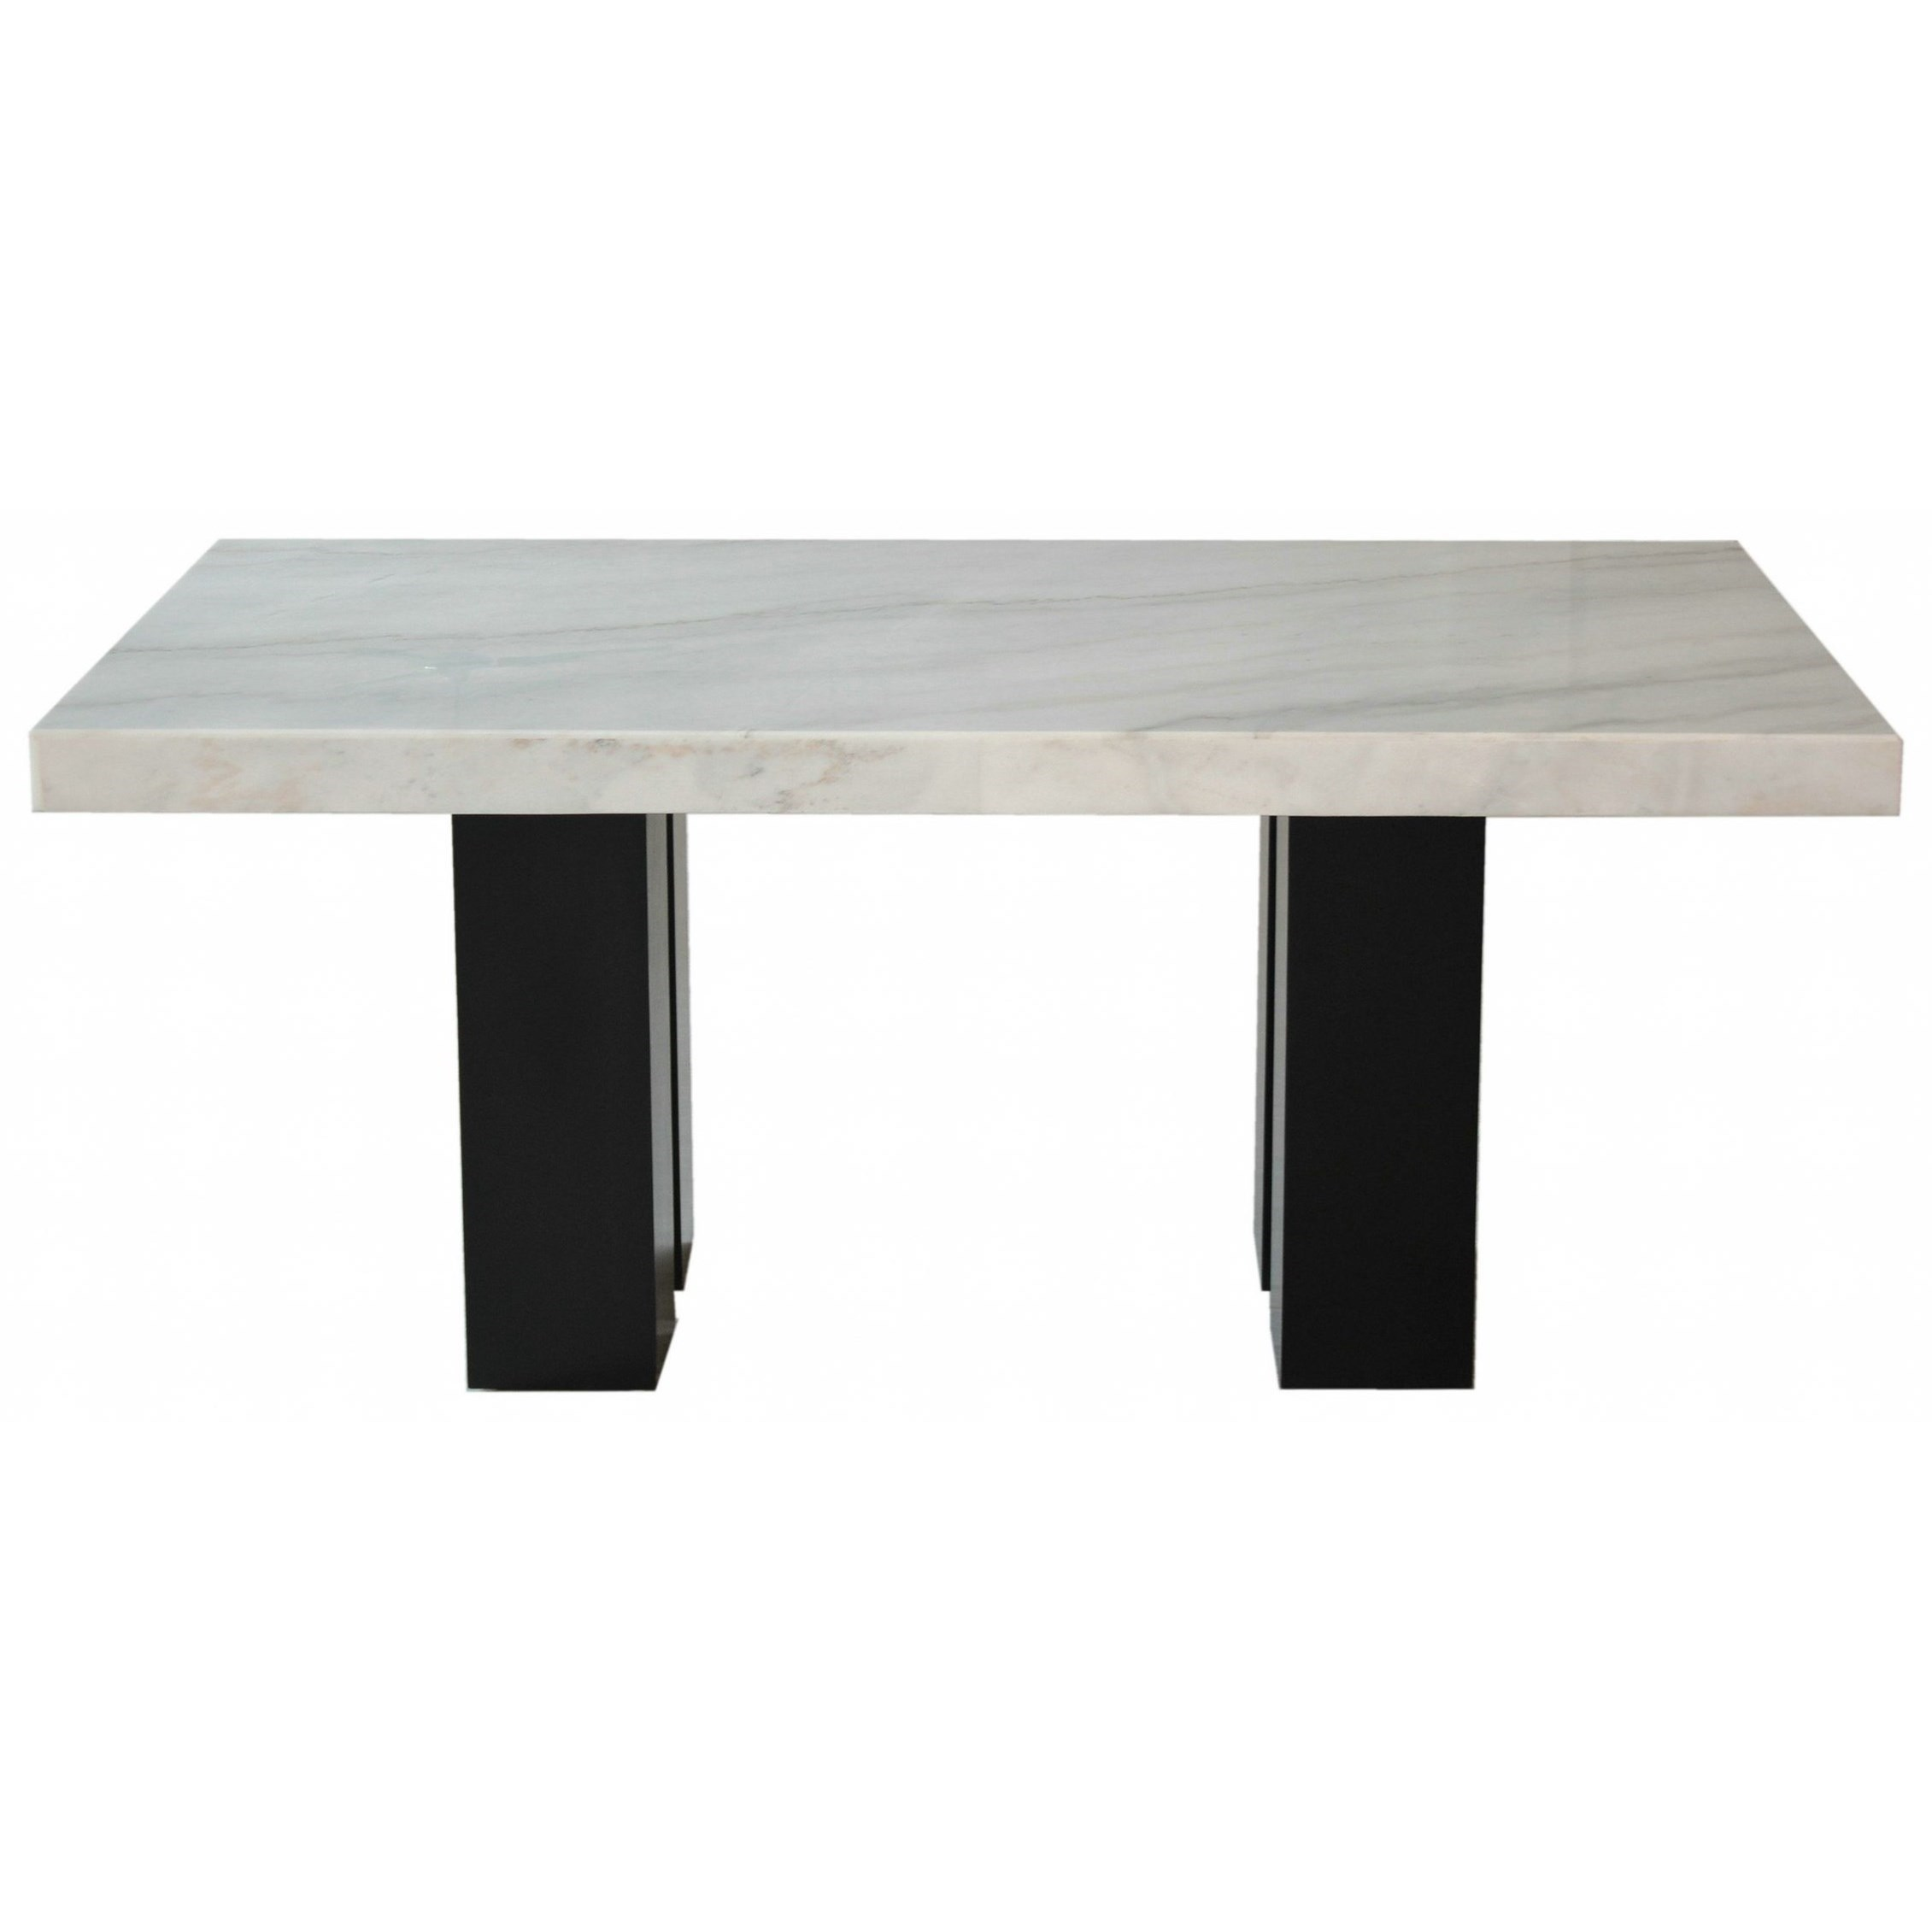 Camila Rectangular Counter Height Table by Steve Silver at Walker's Furniture